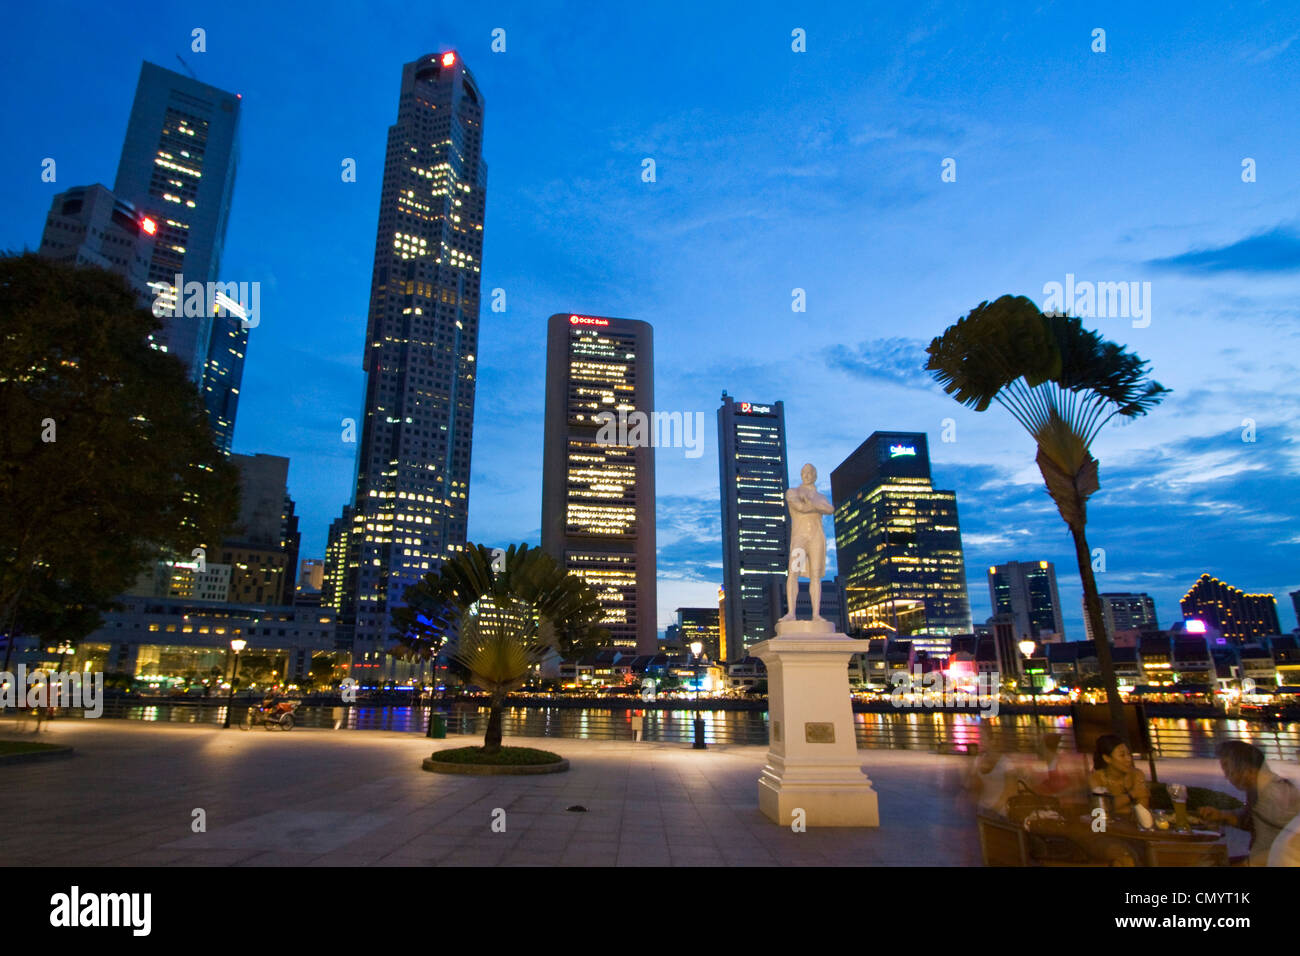 Skyline of Singapur, Raffles Statue, South East Asia, twilight Stock Photo